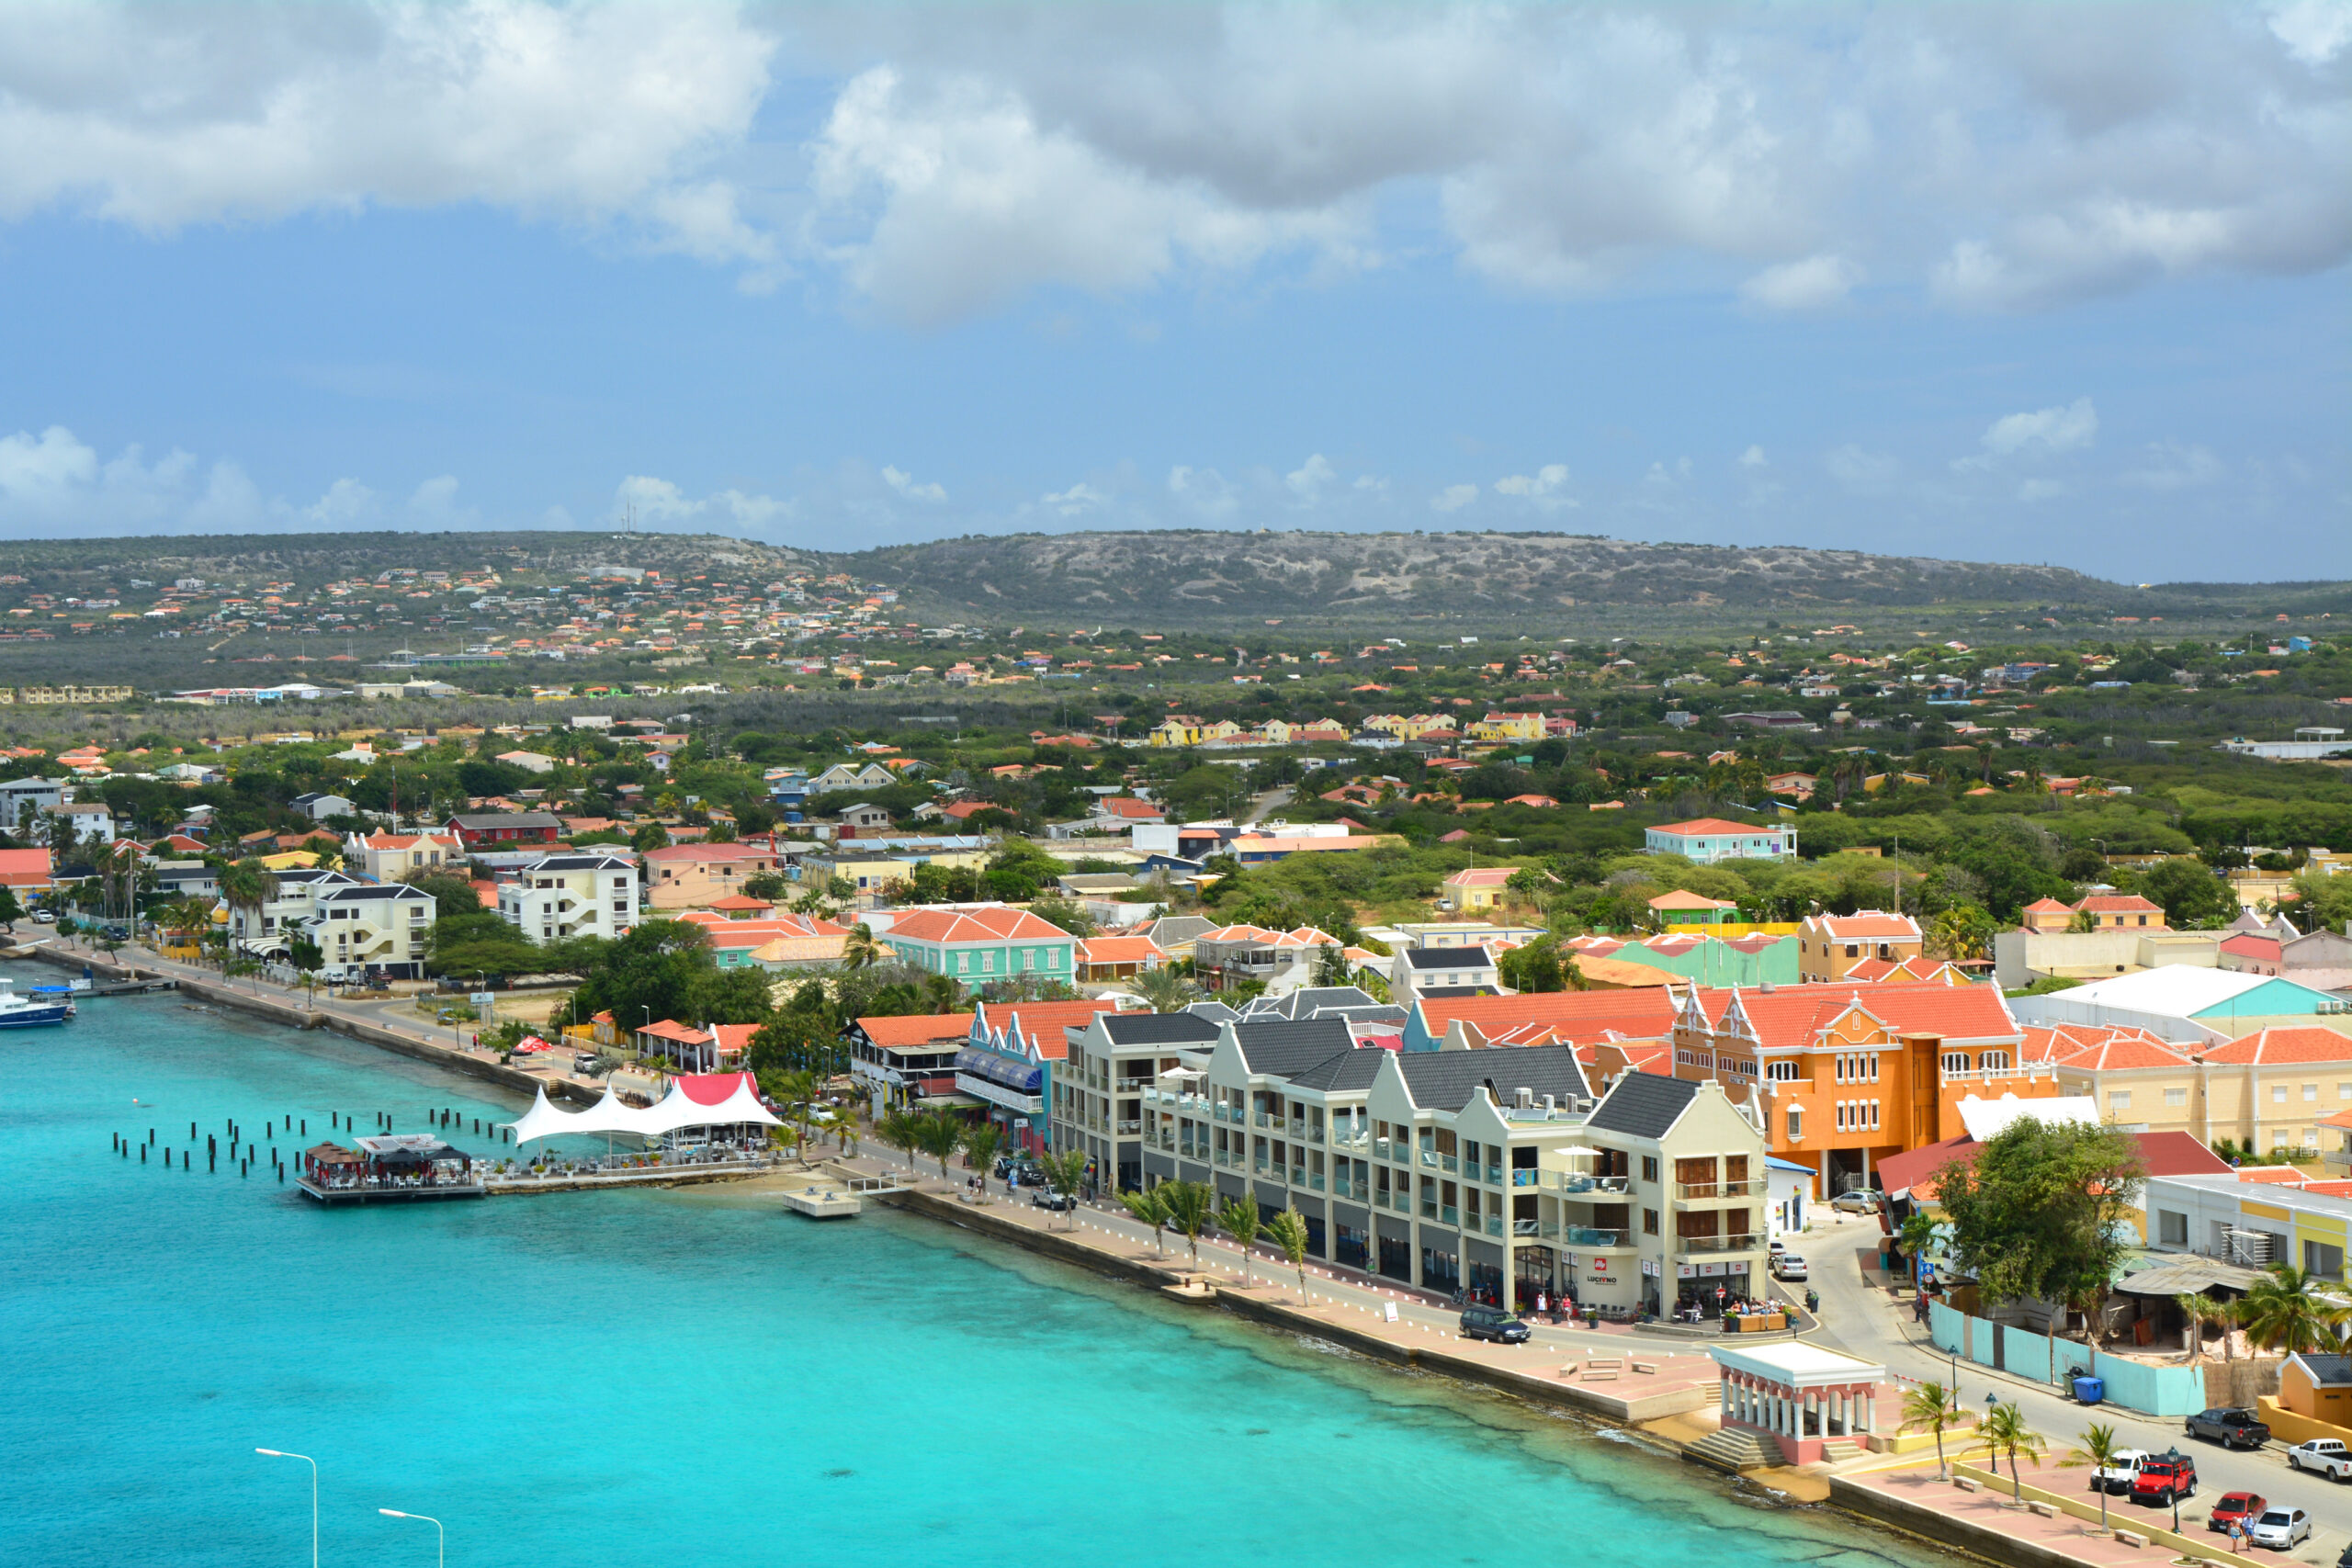 SCUBA trip to Bonaire staying at Sand Dollar Resort